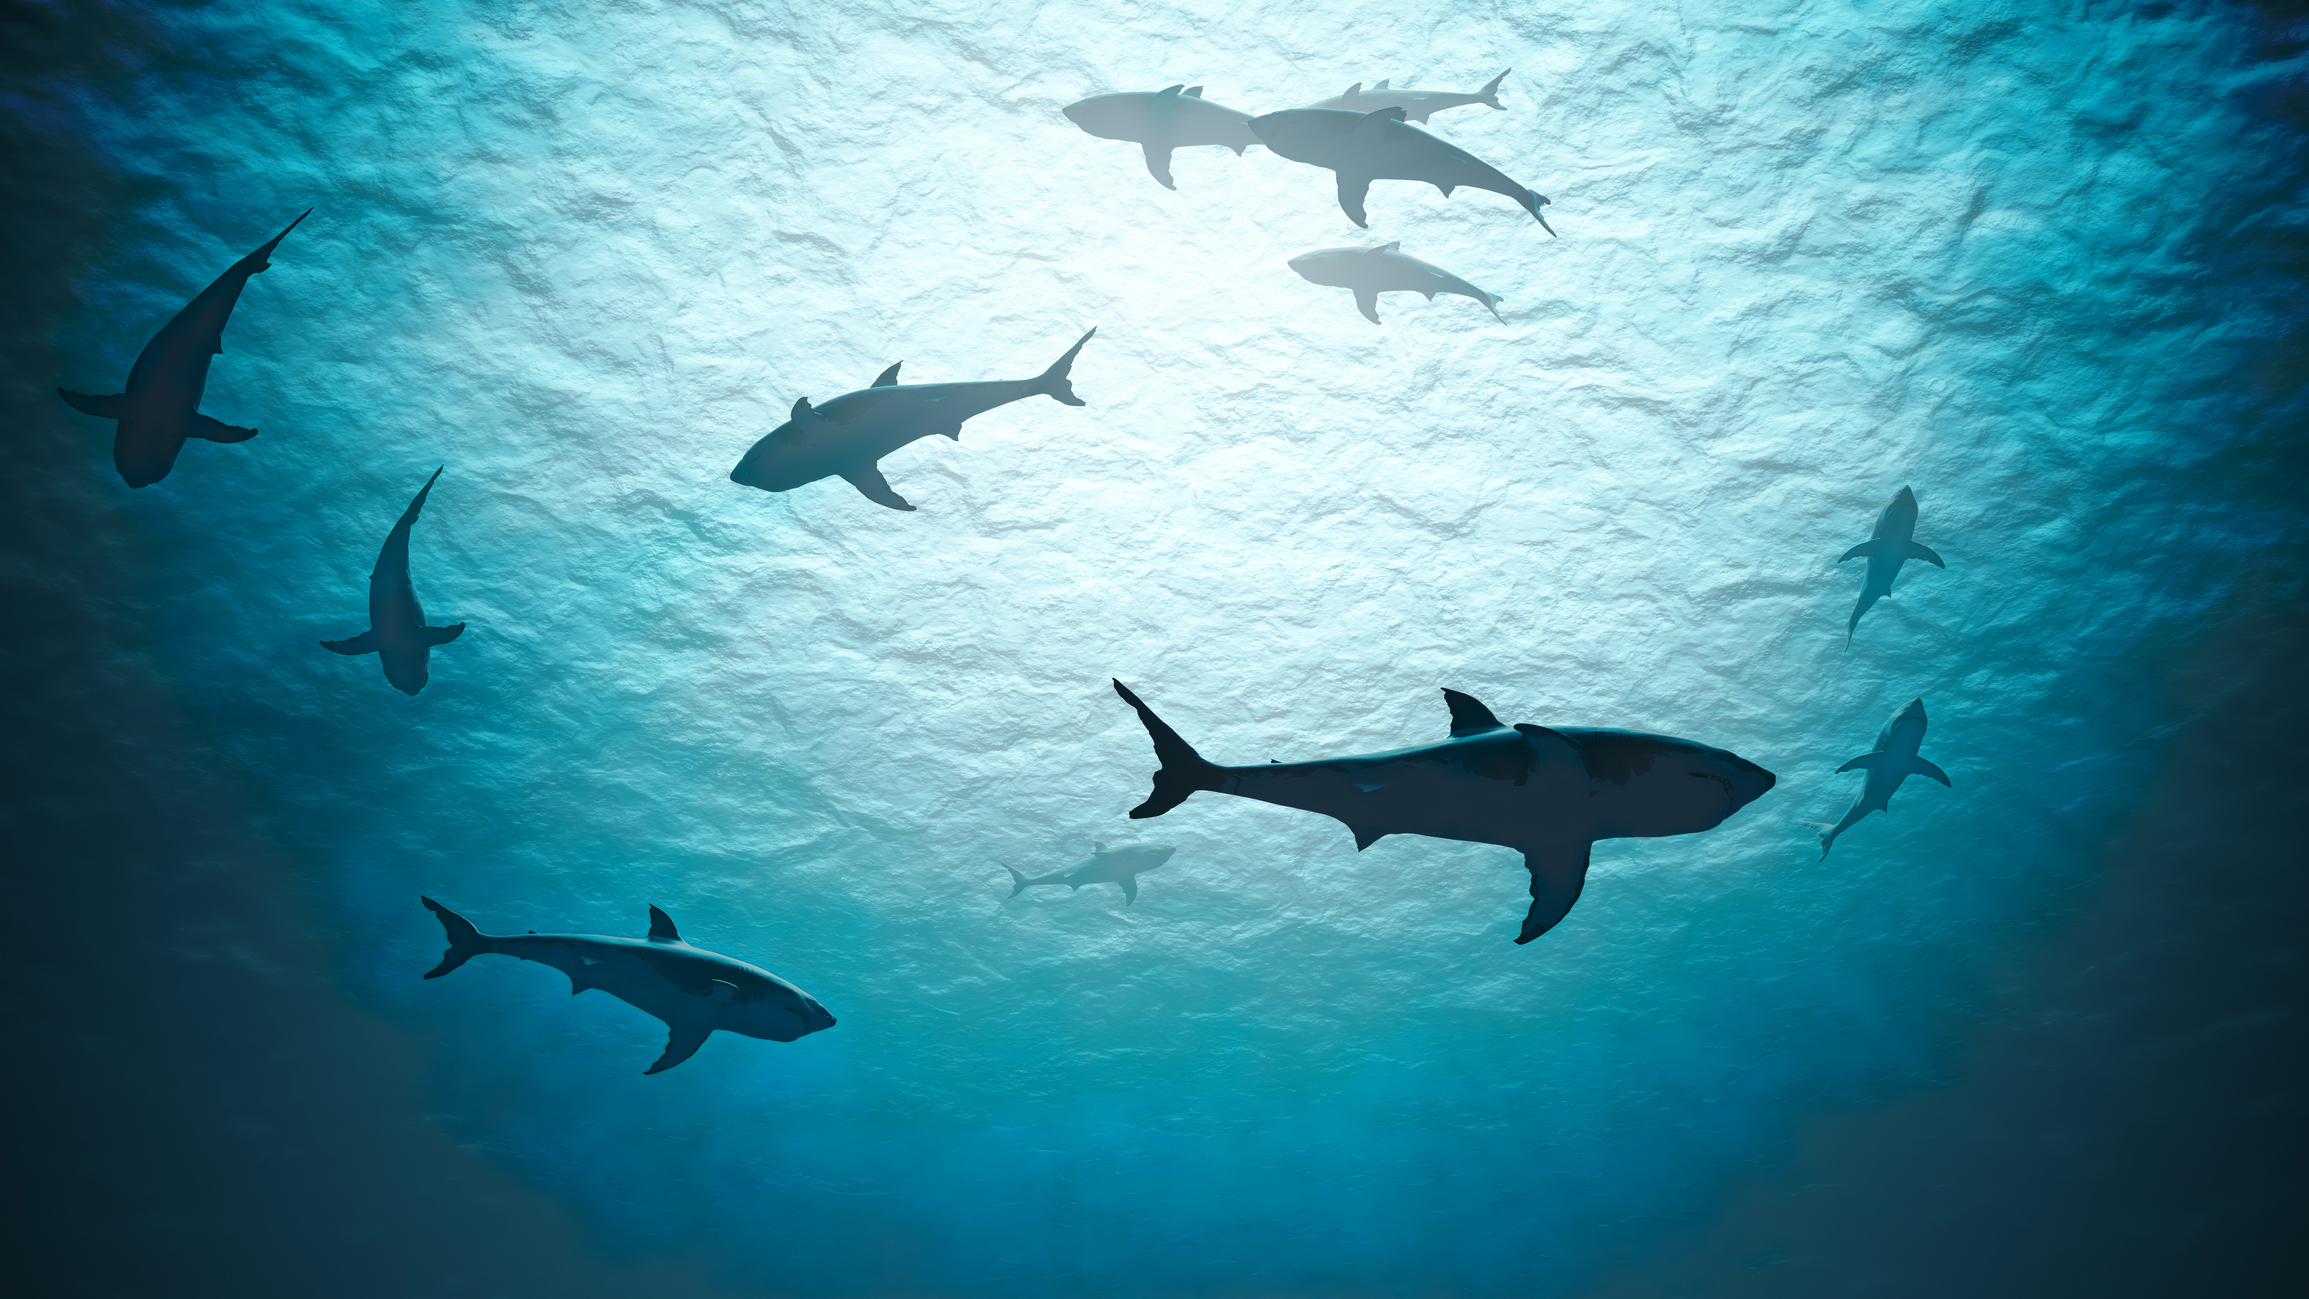 Sharks in the Ocean